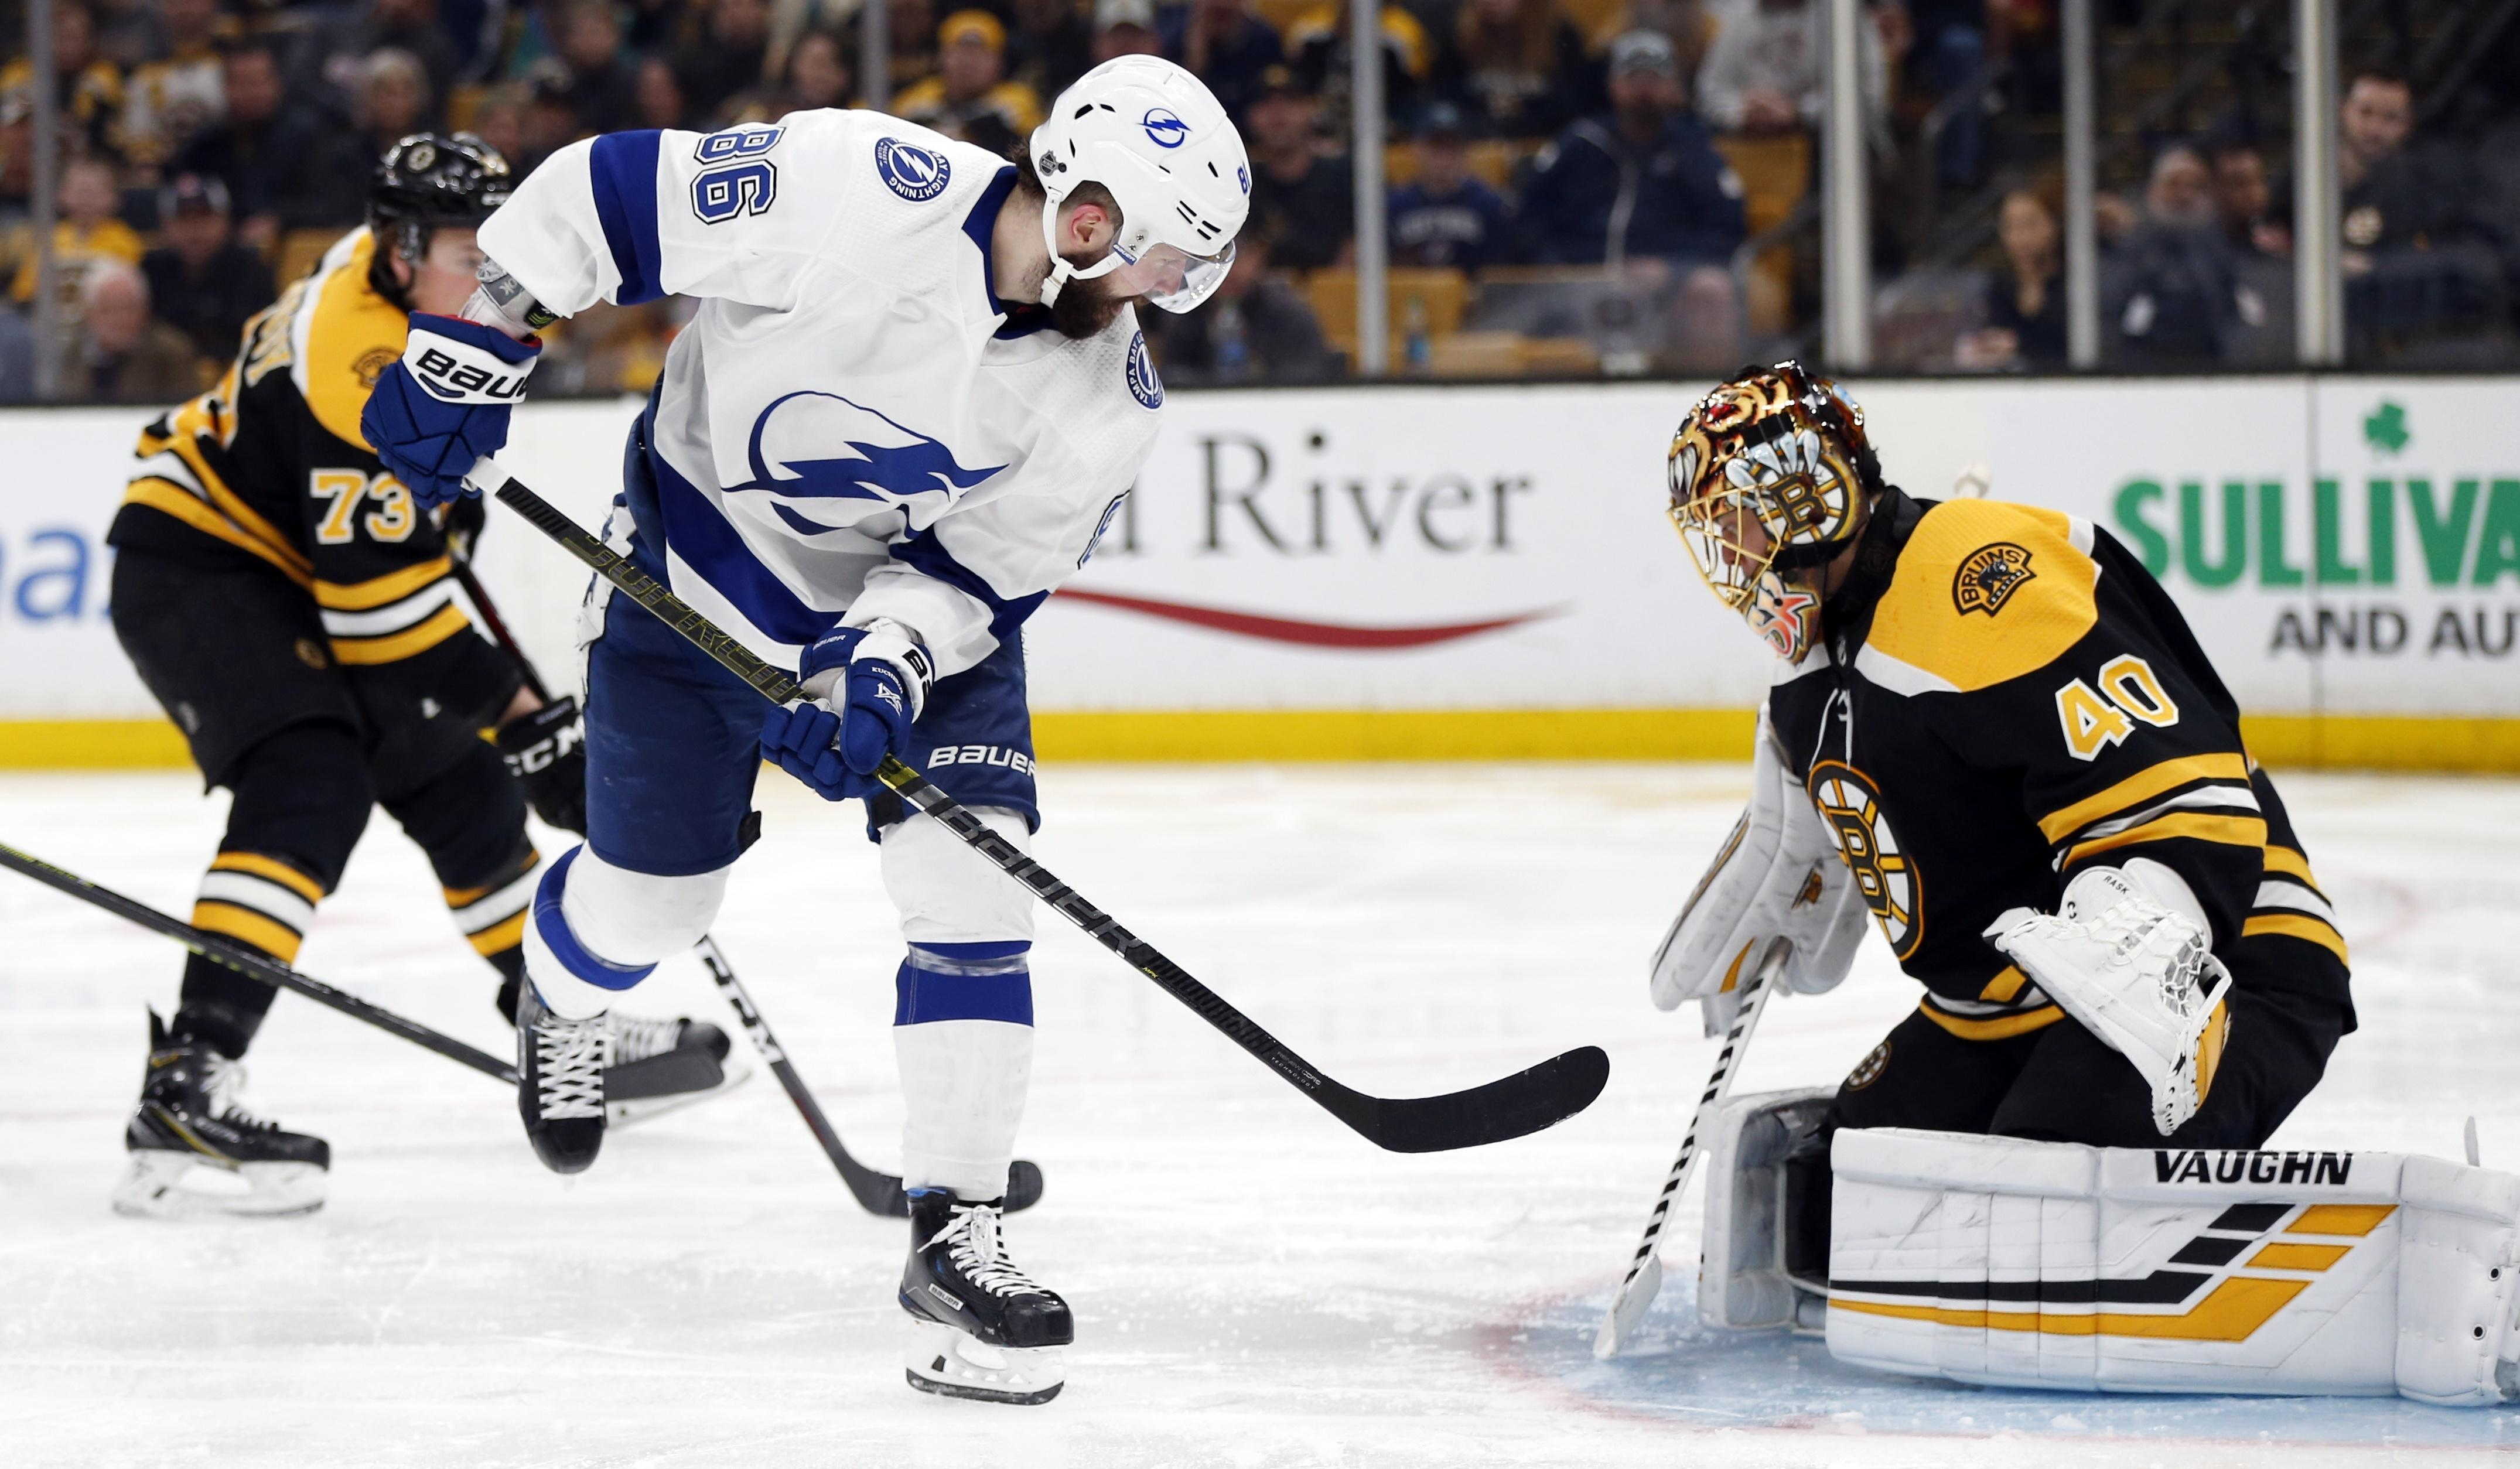 1a0c37822a9 Tampa Bay Lightning s Nikita Kucherov (86) scores on Boston Bruins  Tuukka  Rask (